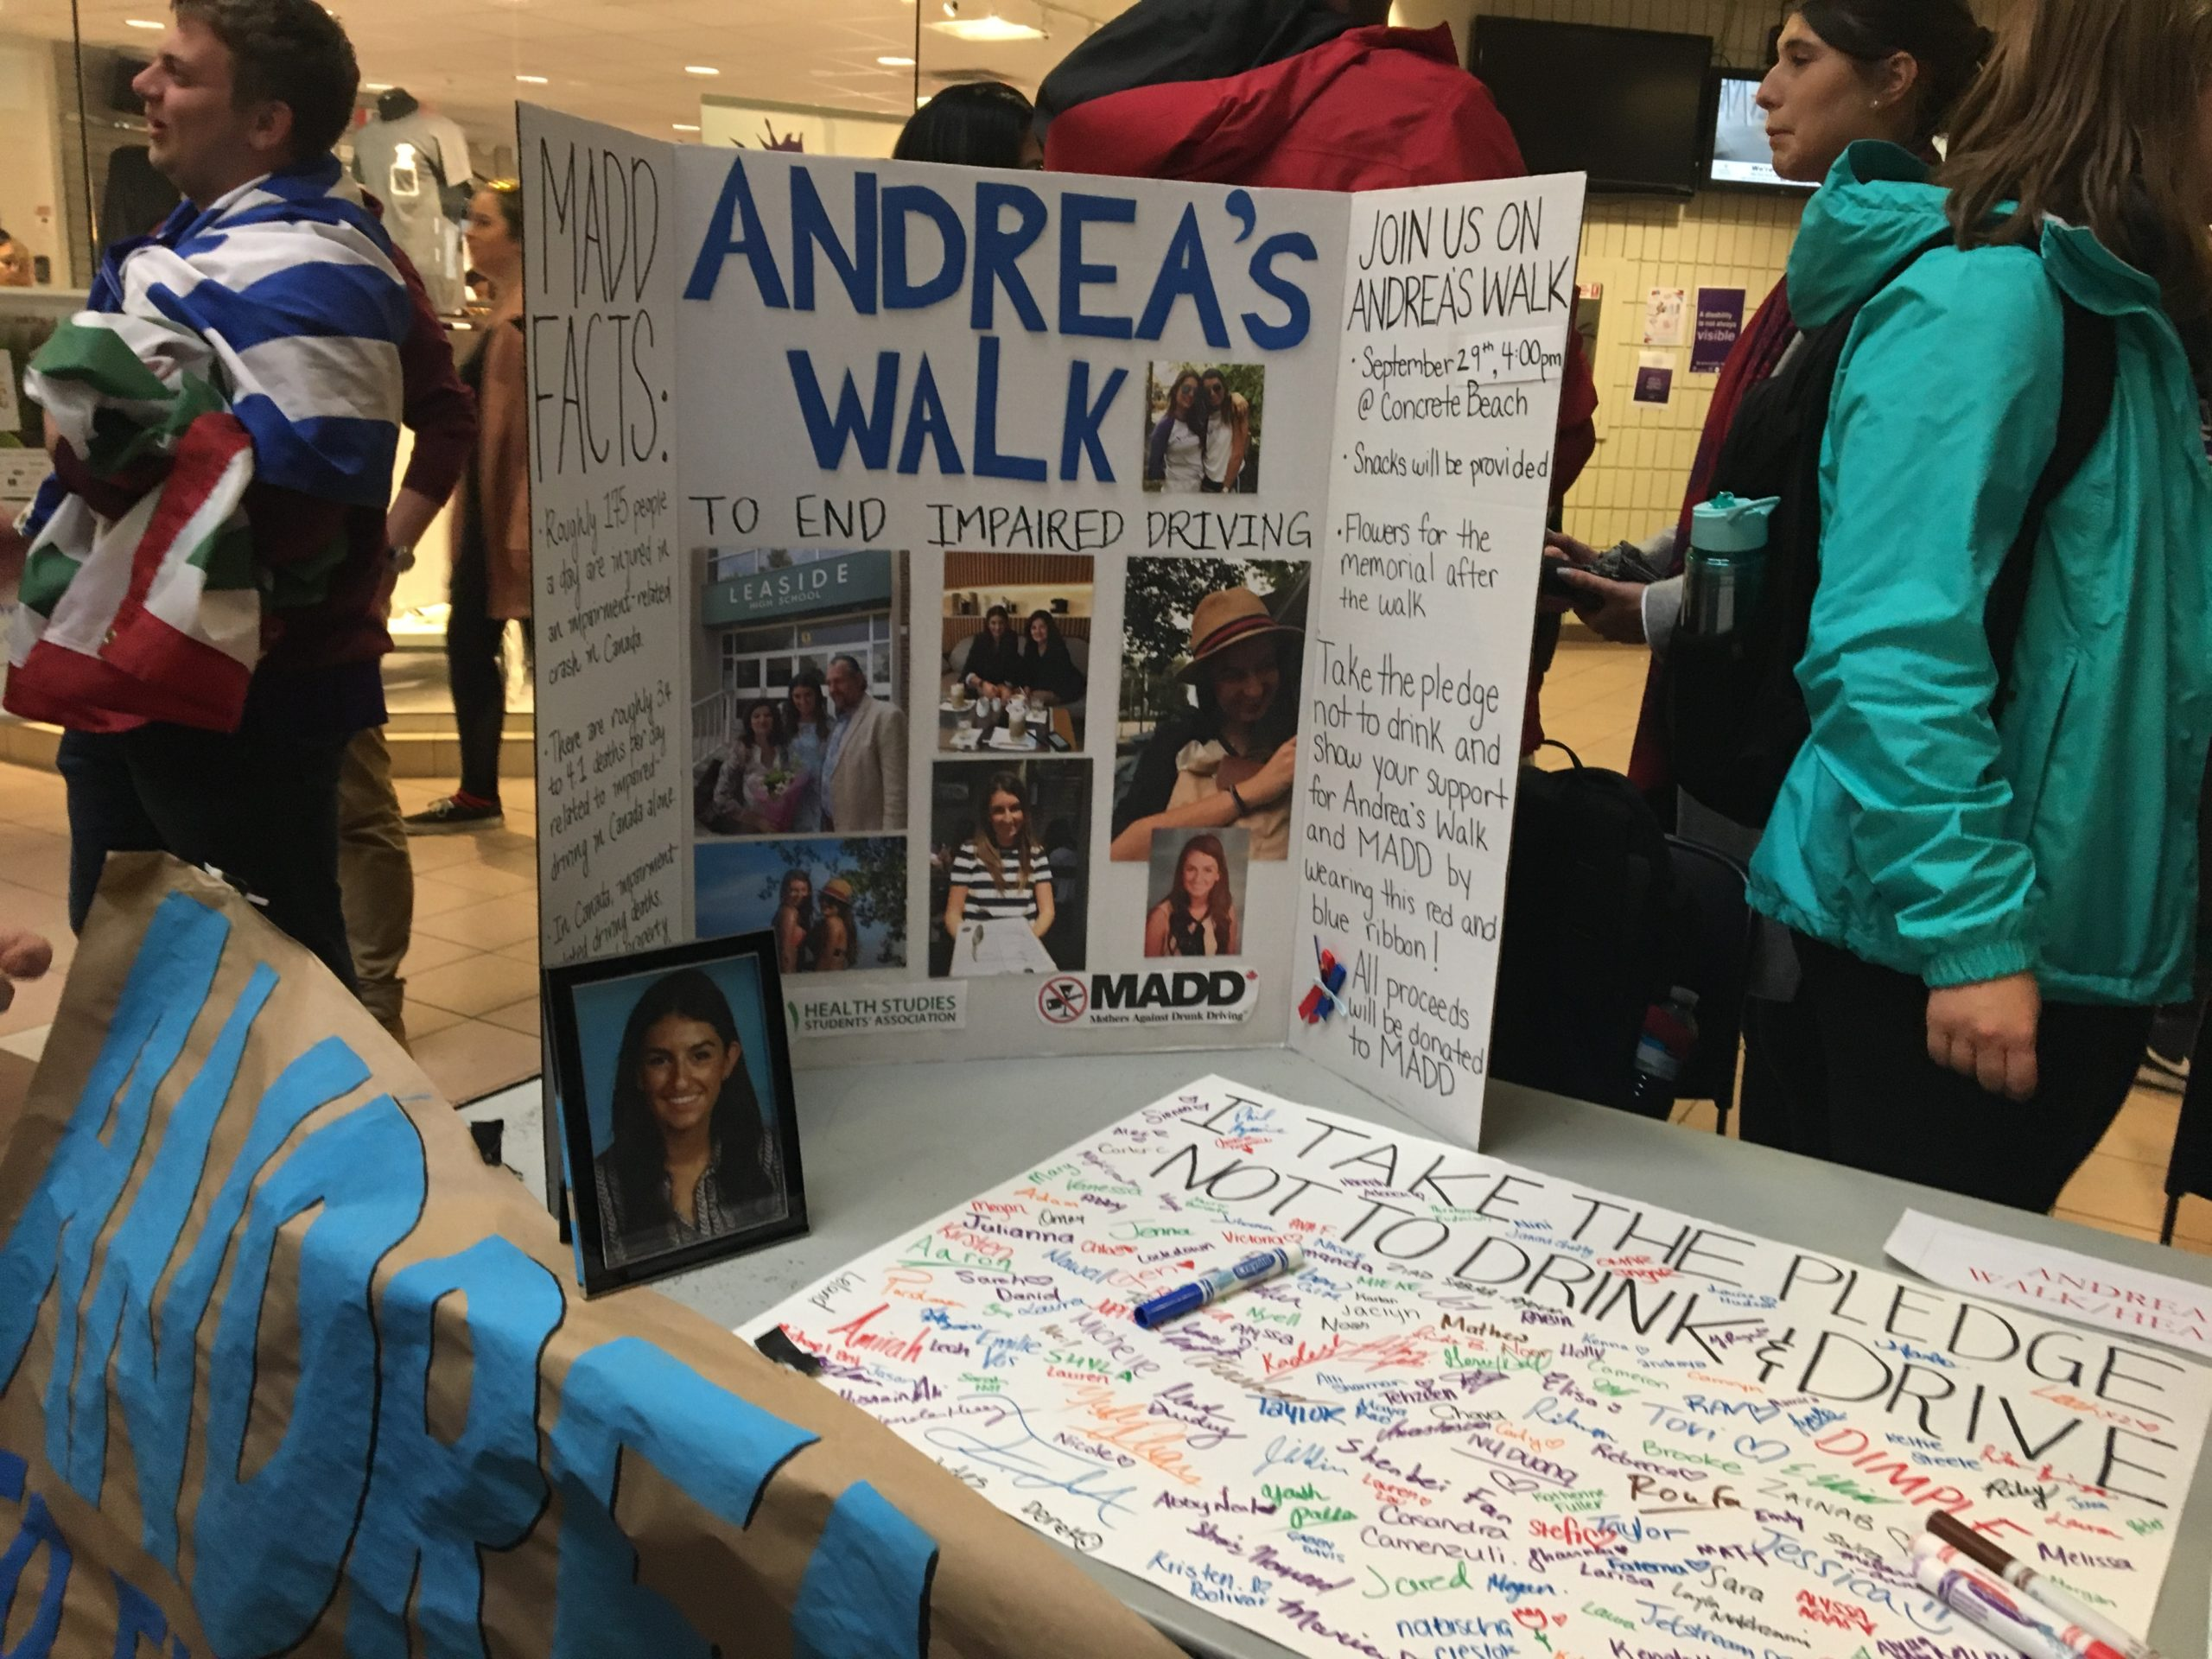 Western students remember the life of Andrea Christidis